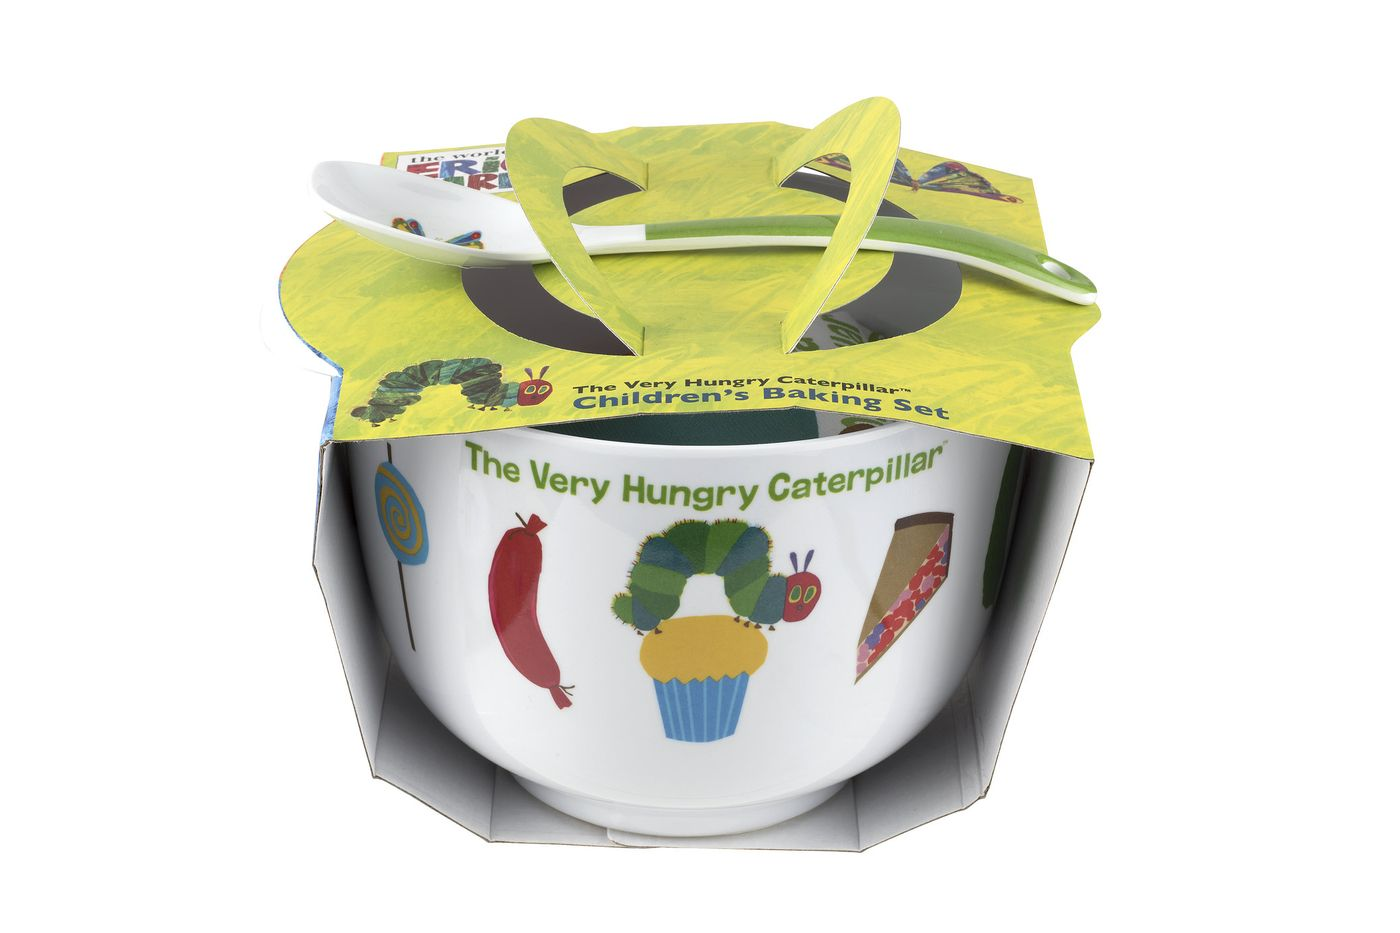 Portmeirion The Very Hungry Caterpillar by Eric Carle Children's Baking Set thumb 2